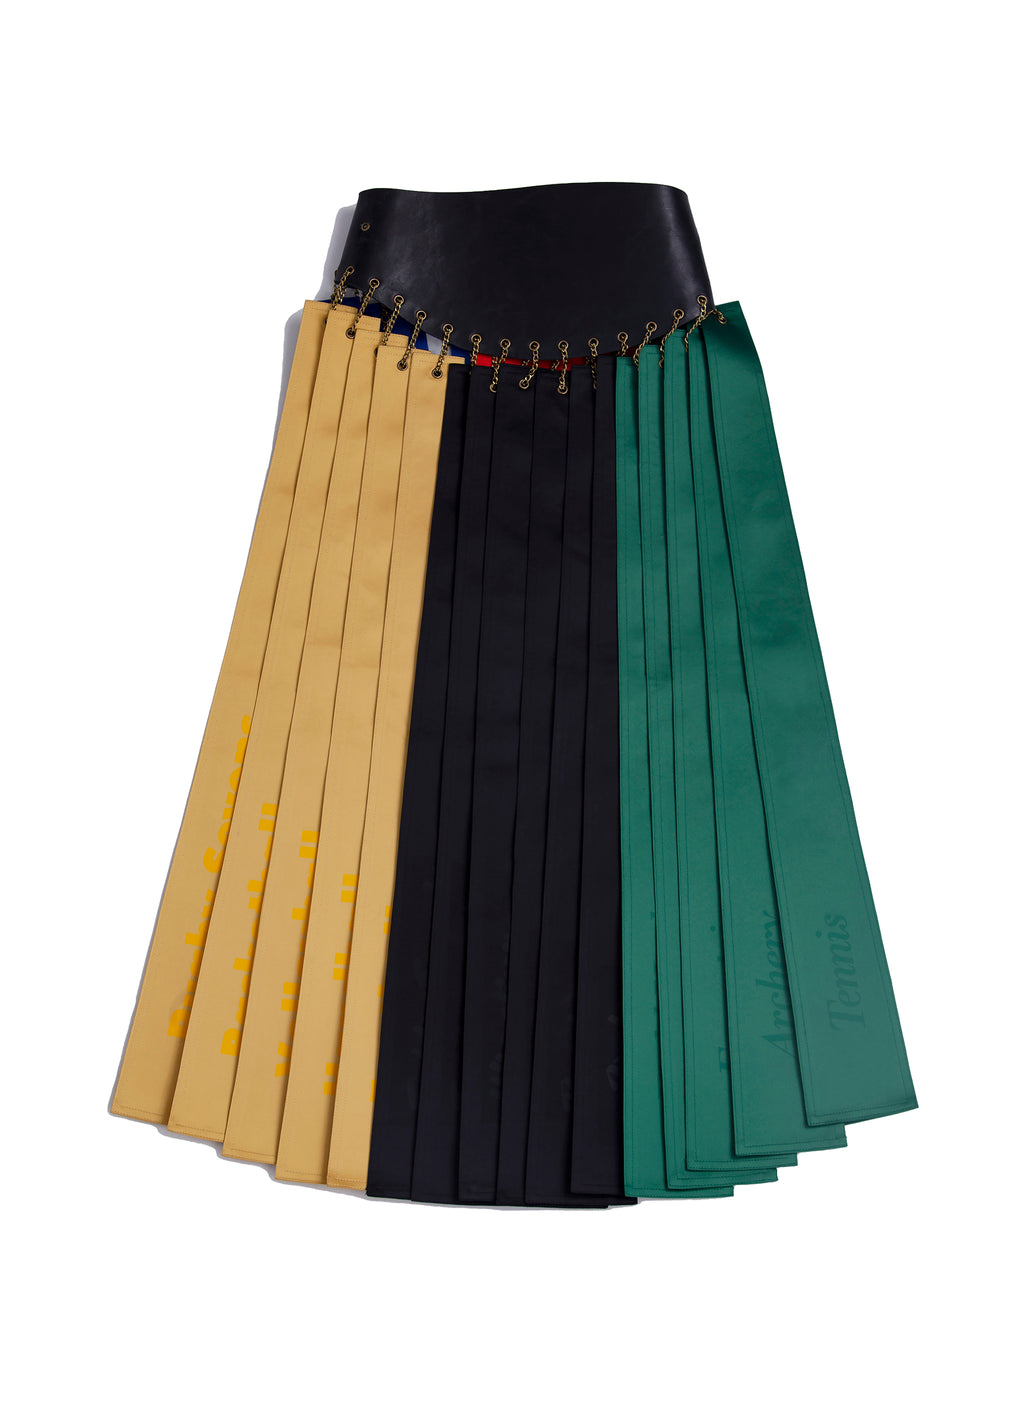 Etiquette Olympic leather skirt